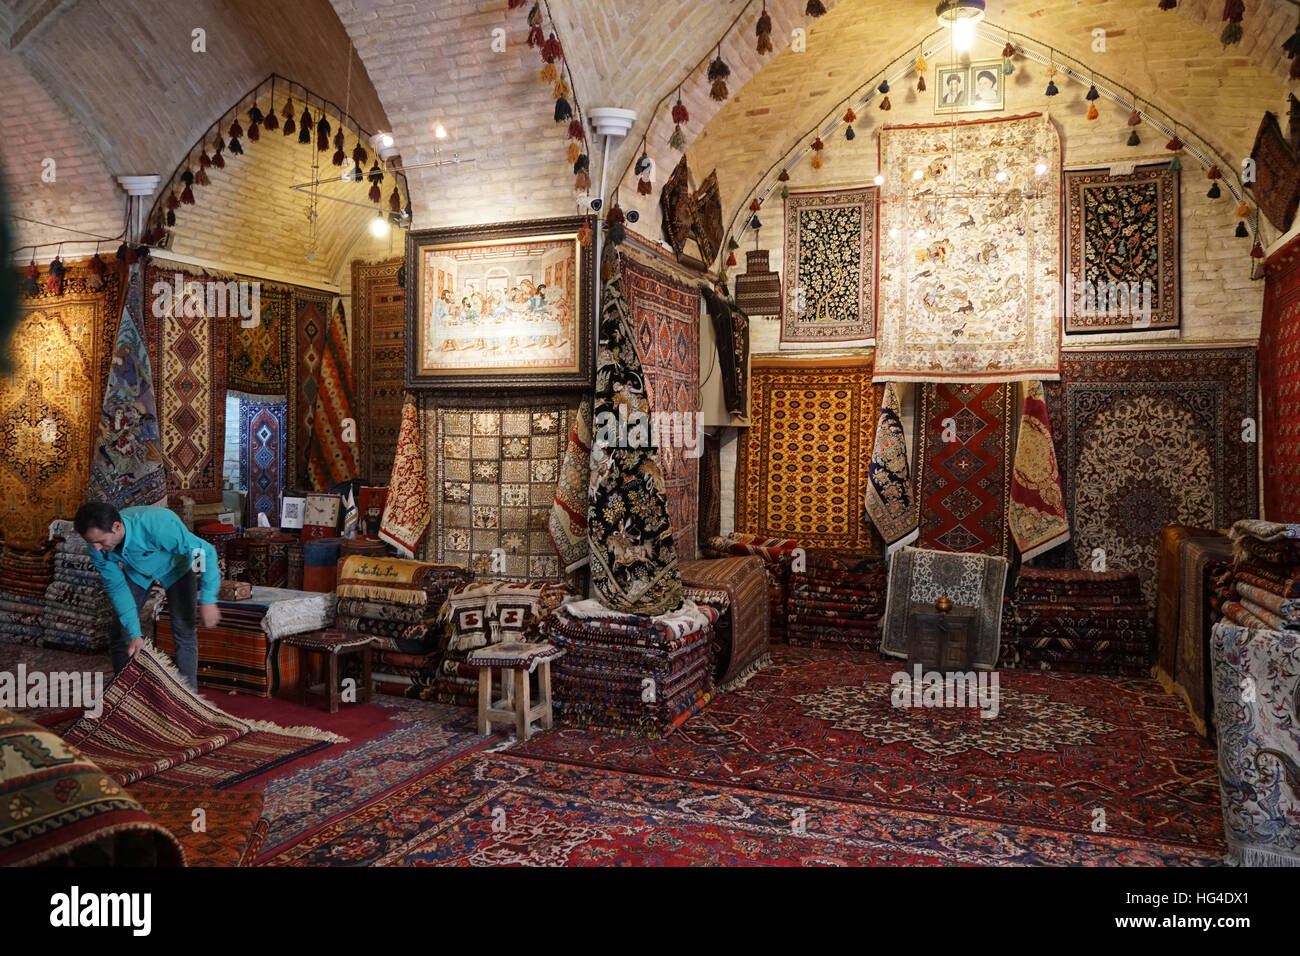 Boutique de tapis, Grand Bazar, Isfahan, Iran, Moyen-Orient Photo Stock